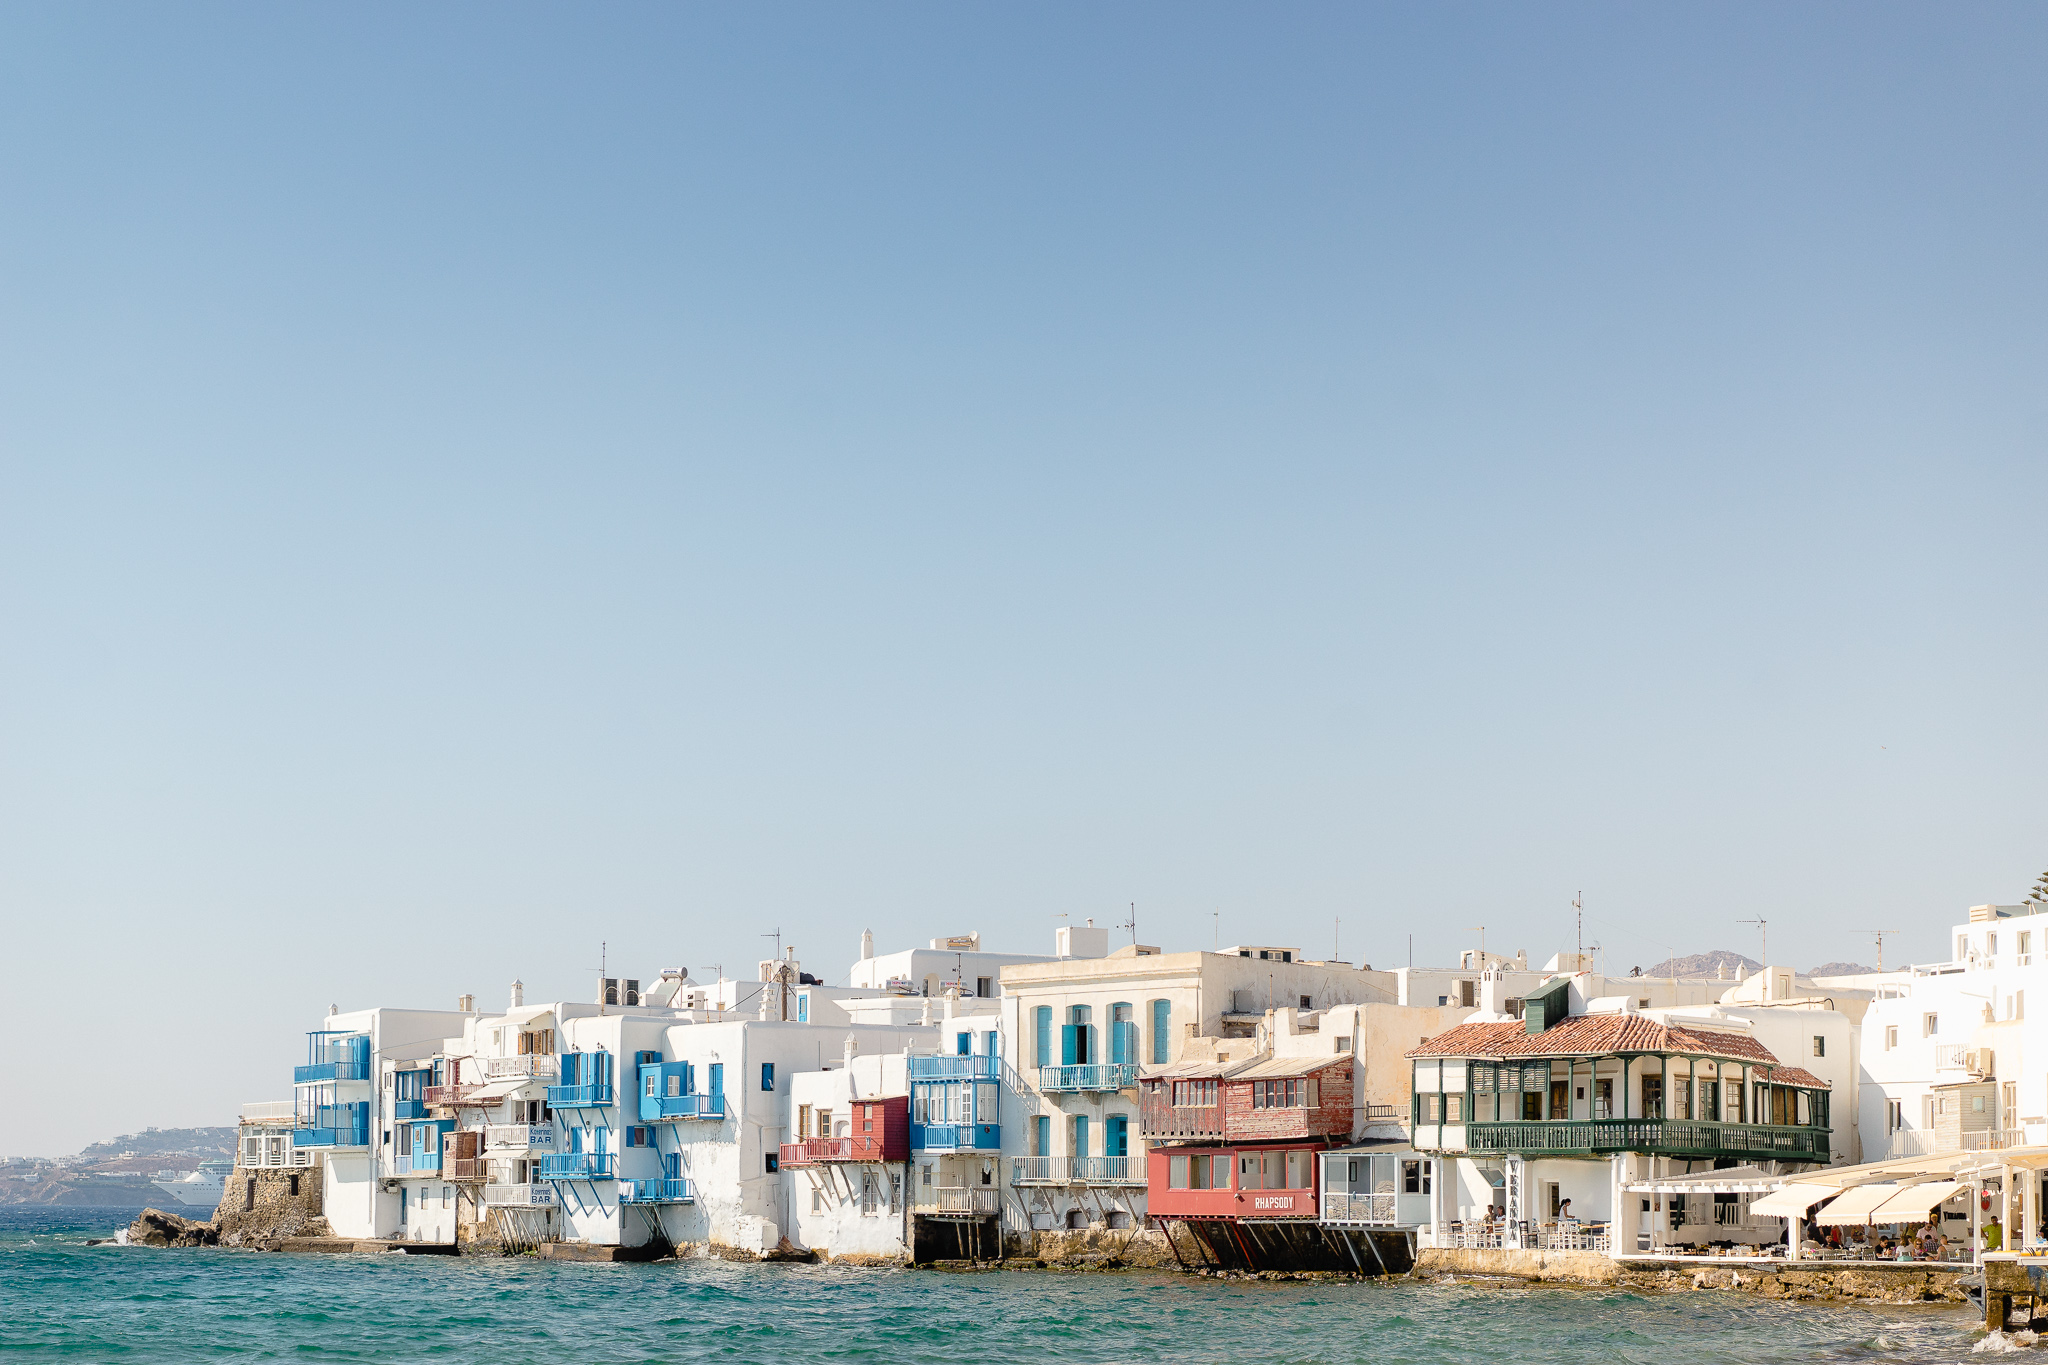 Mykonos-Greece-23.jpg